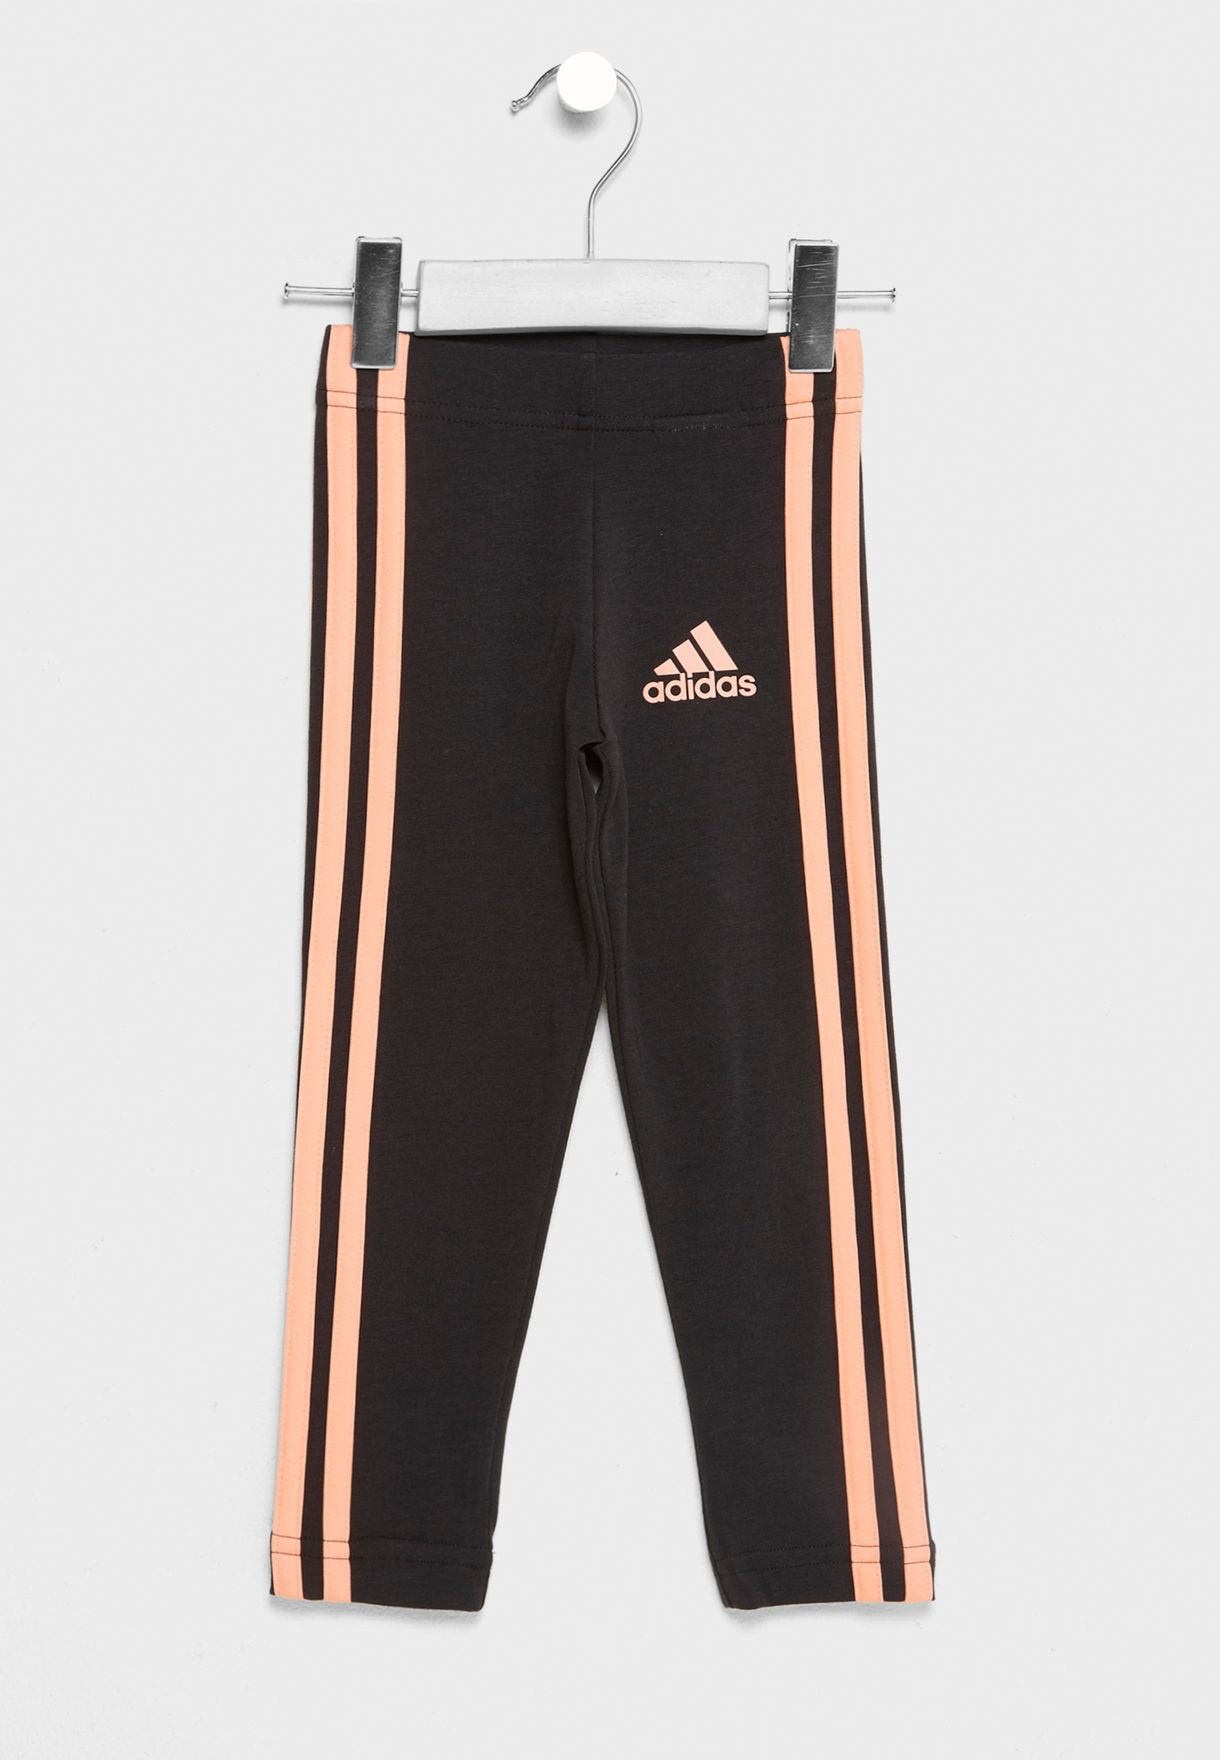 Shop adidas black Kids 3 Striped Tights CF6616 for Kids in Kuwait -  AD476AT72ESL fc01ea72ae